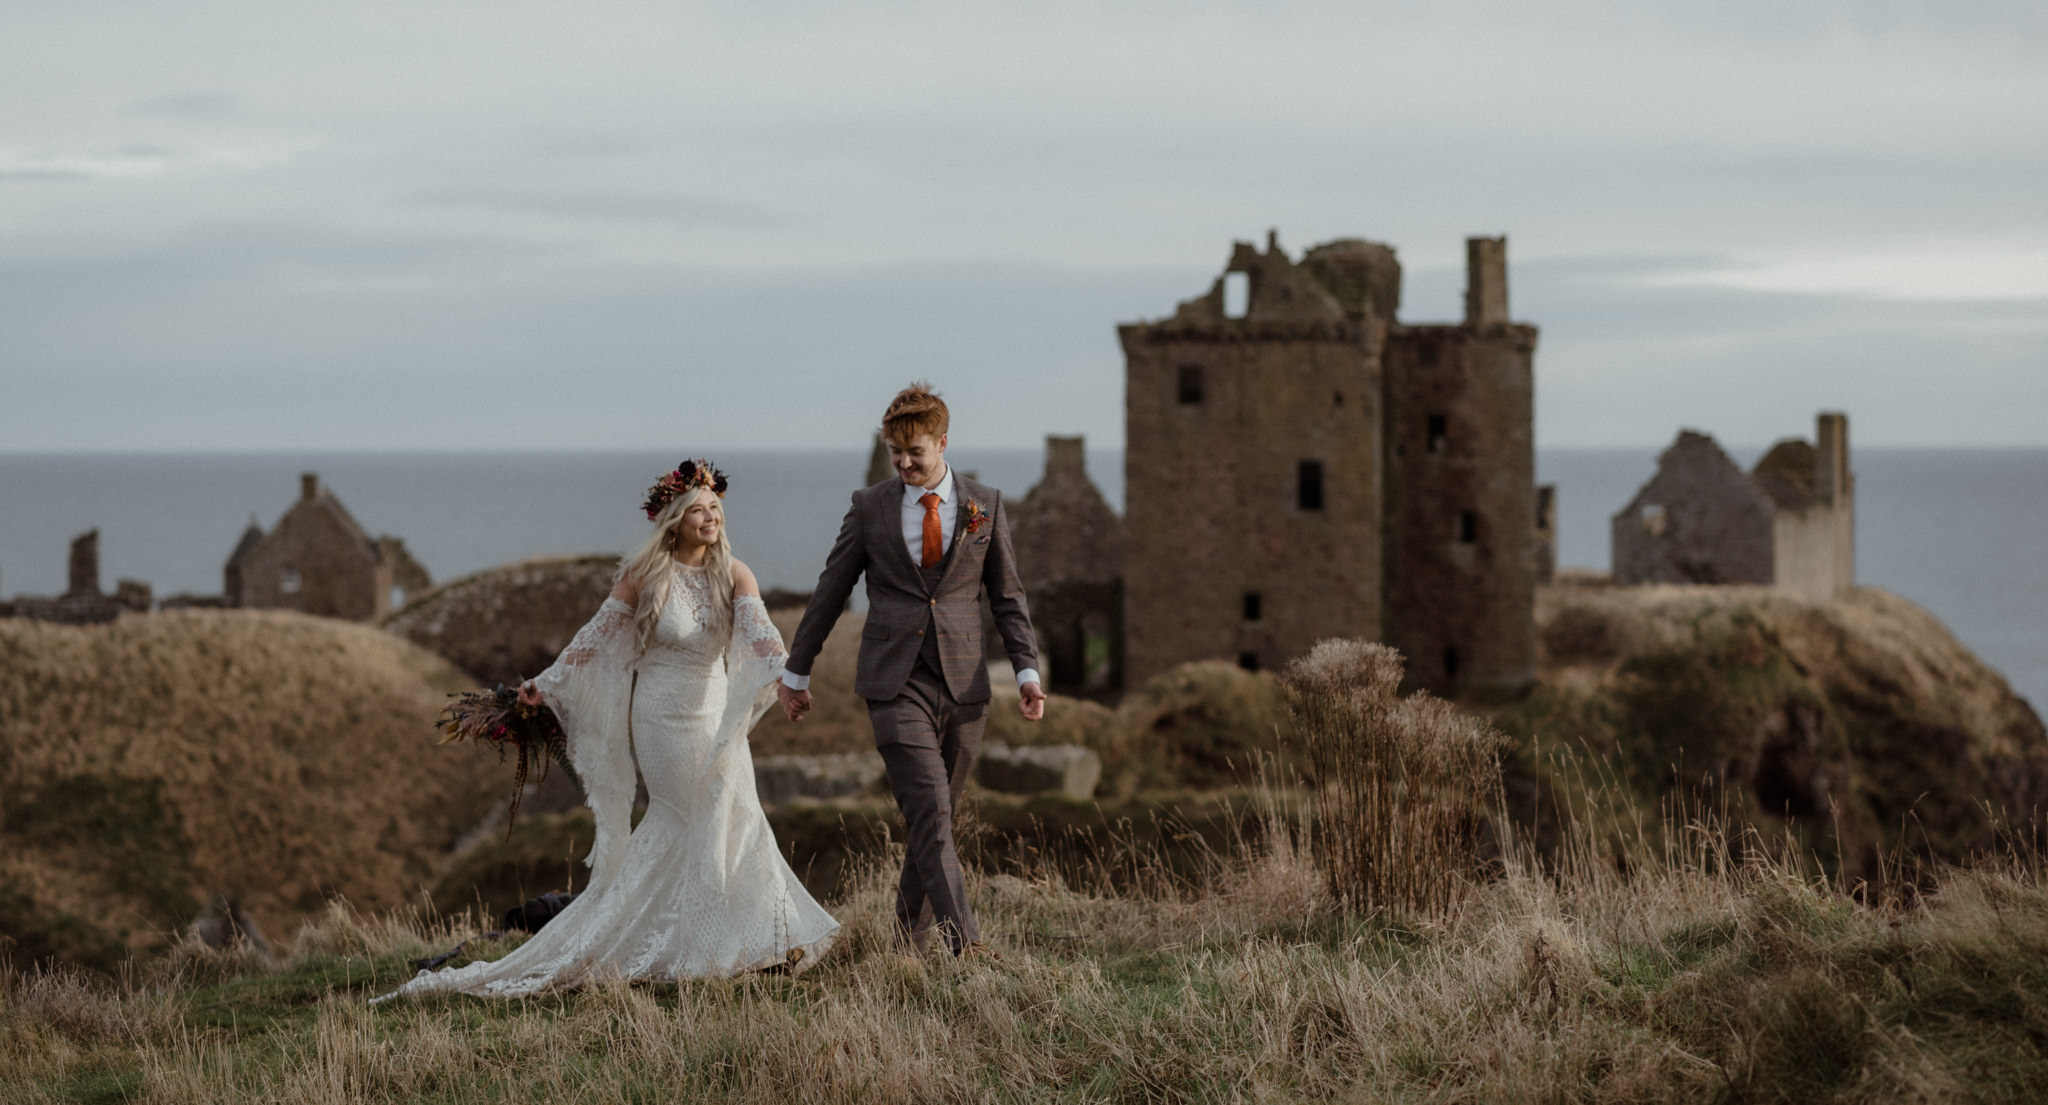 Bride and groom at an intimate elopement wedding at Dunnottar Castle in Scotland